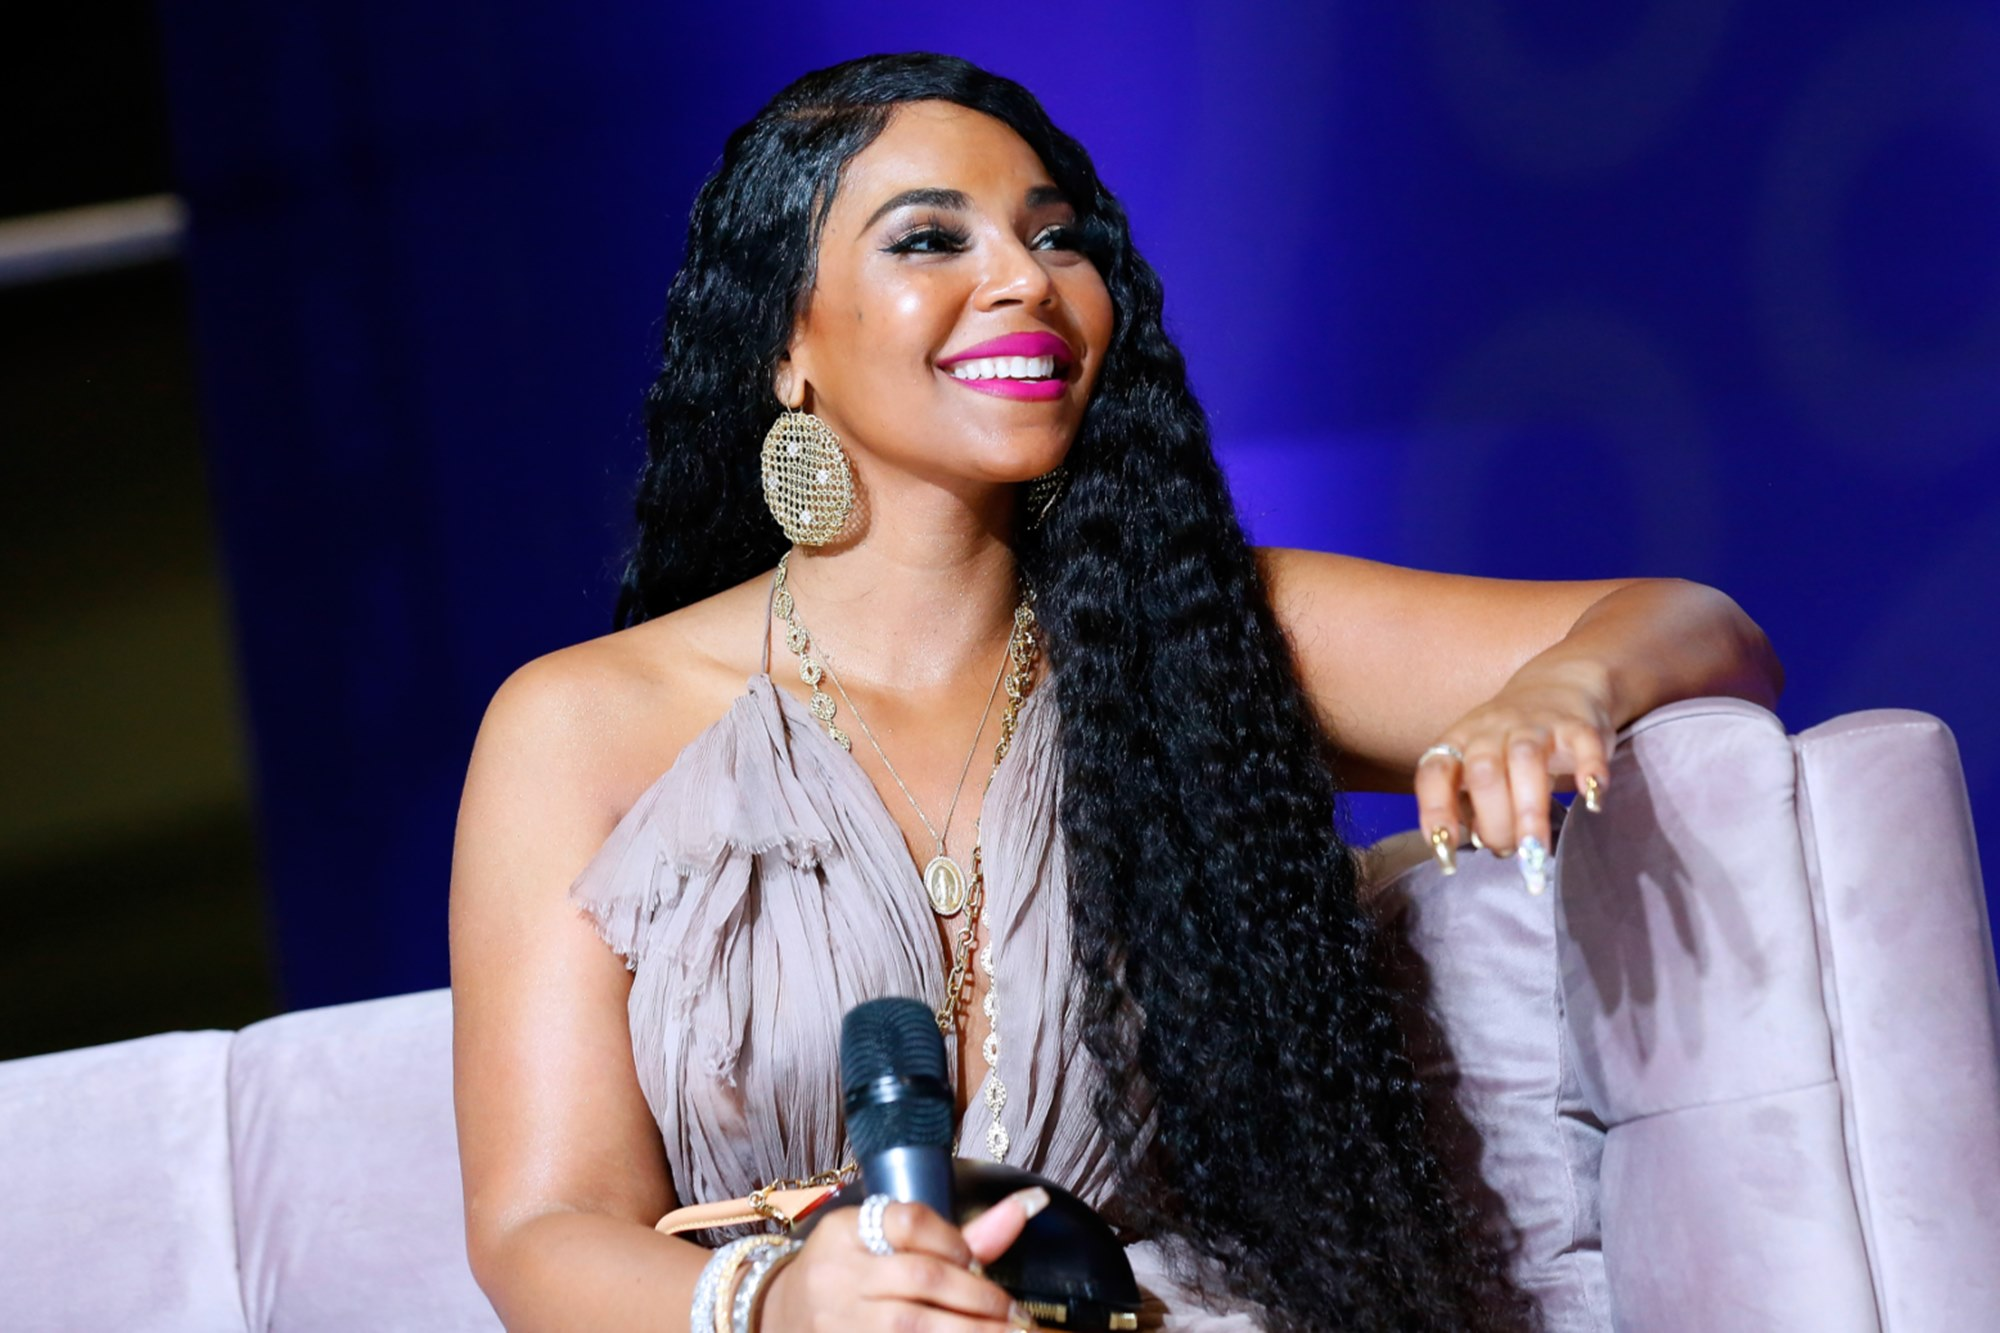 """""""ashanti-puts-her-thick-figure-on-full-display-in-barely-there-outfits-photos-have-fans-going-wild"""""""